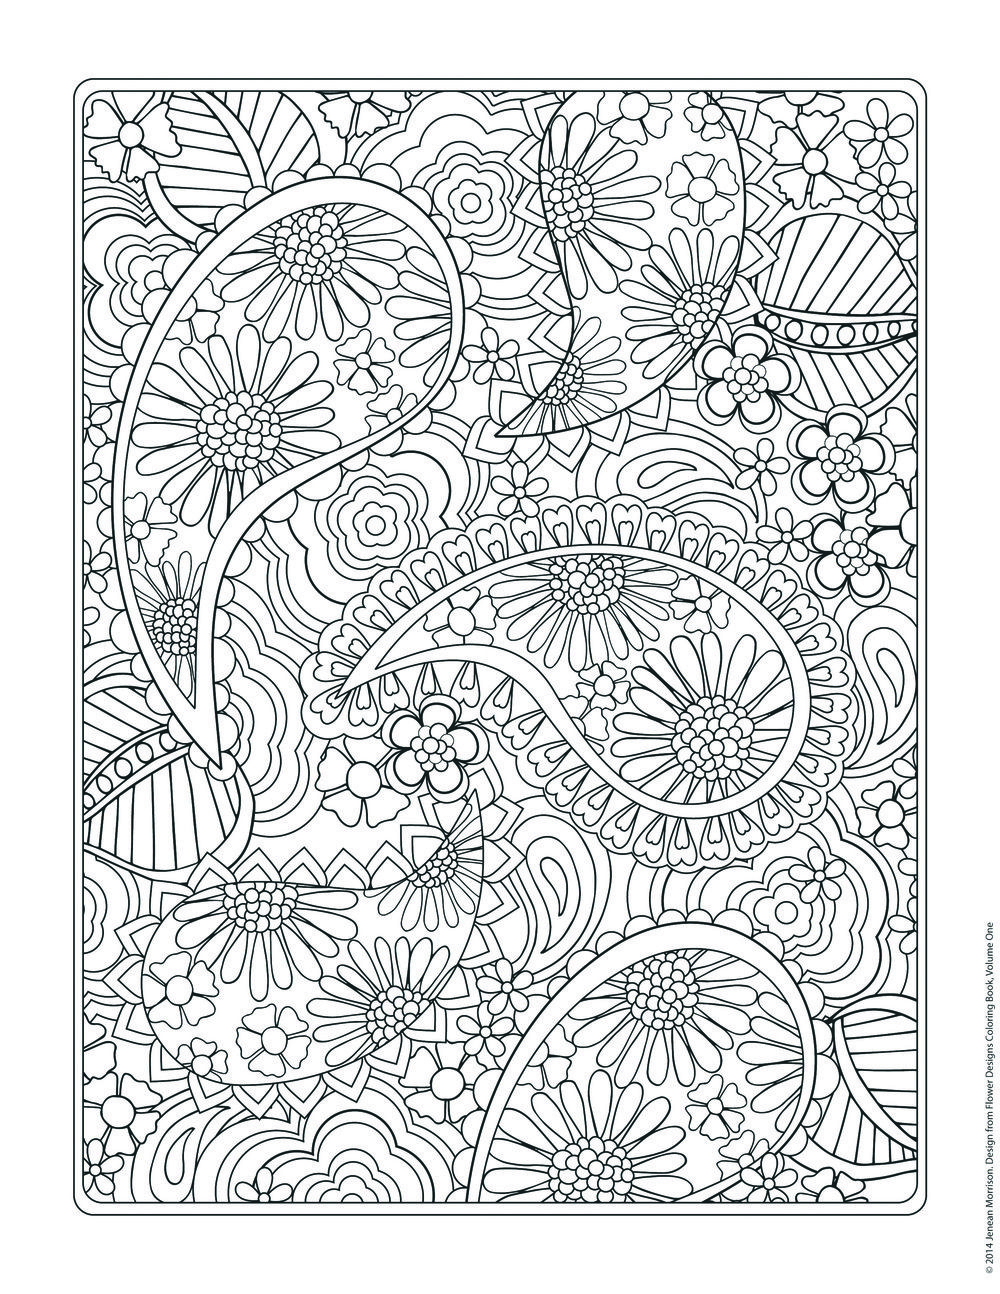 Free coloring pages designs - Coloring Book Coloring Pages Coloration